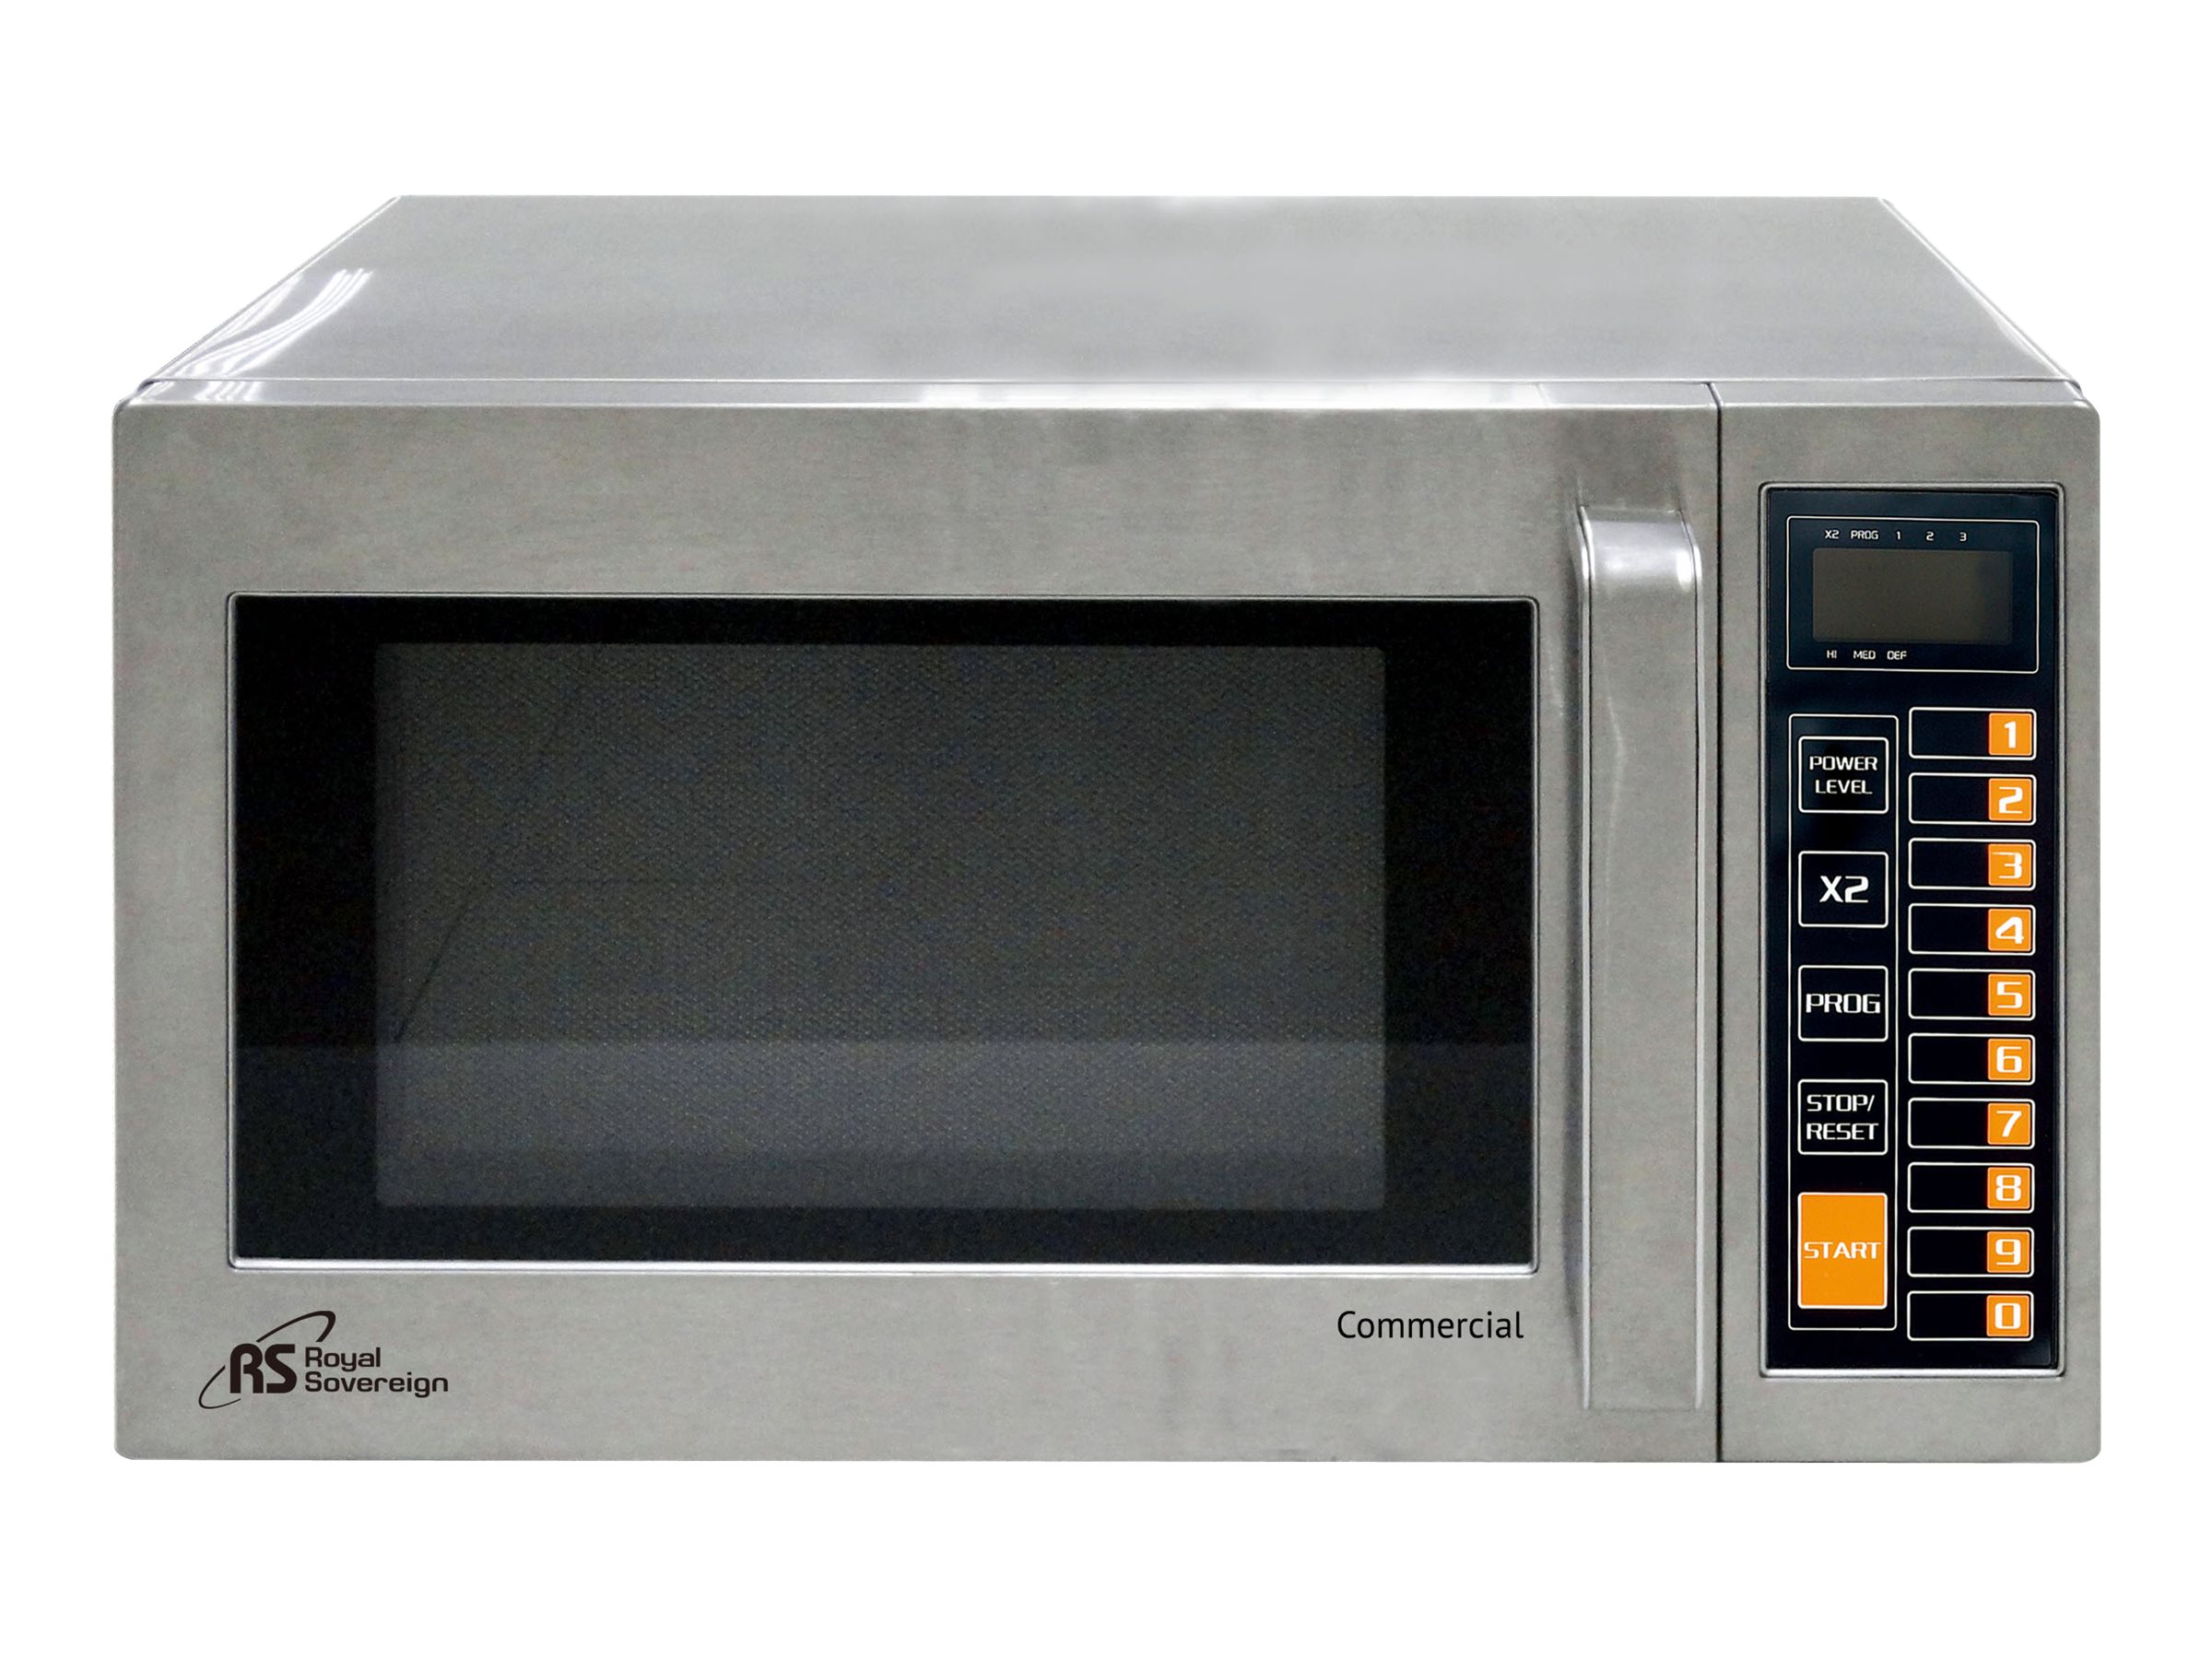 Royal Sovereign Commercial Grade 0.9 cu. ft. Stainless Steel Microwave